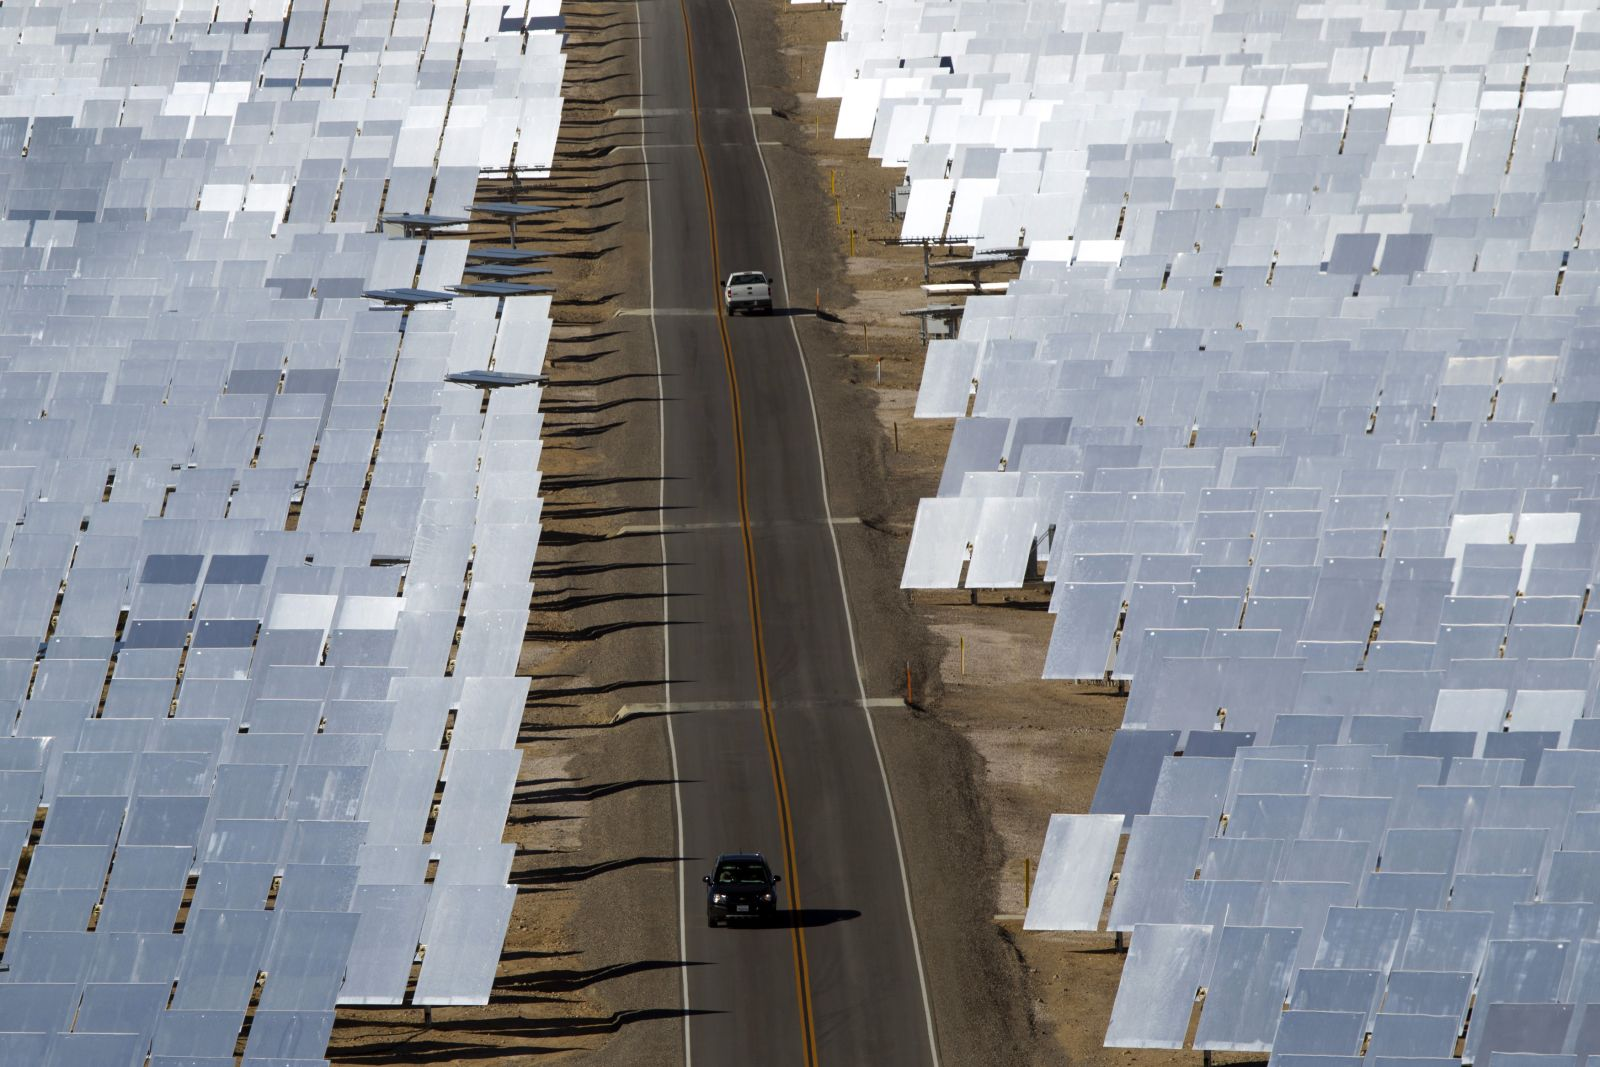 A field of heliostats (mirrors that track the sun and reflect the sunlight onto a central receiving point) at the Ivanpah Solar Electric Generating System in Nipton.